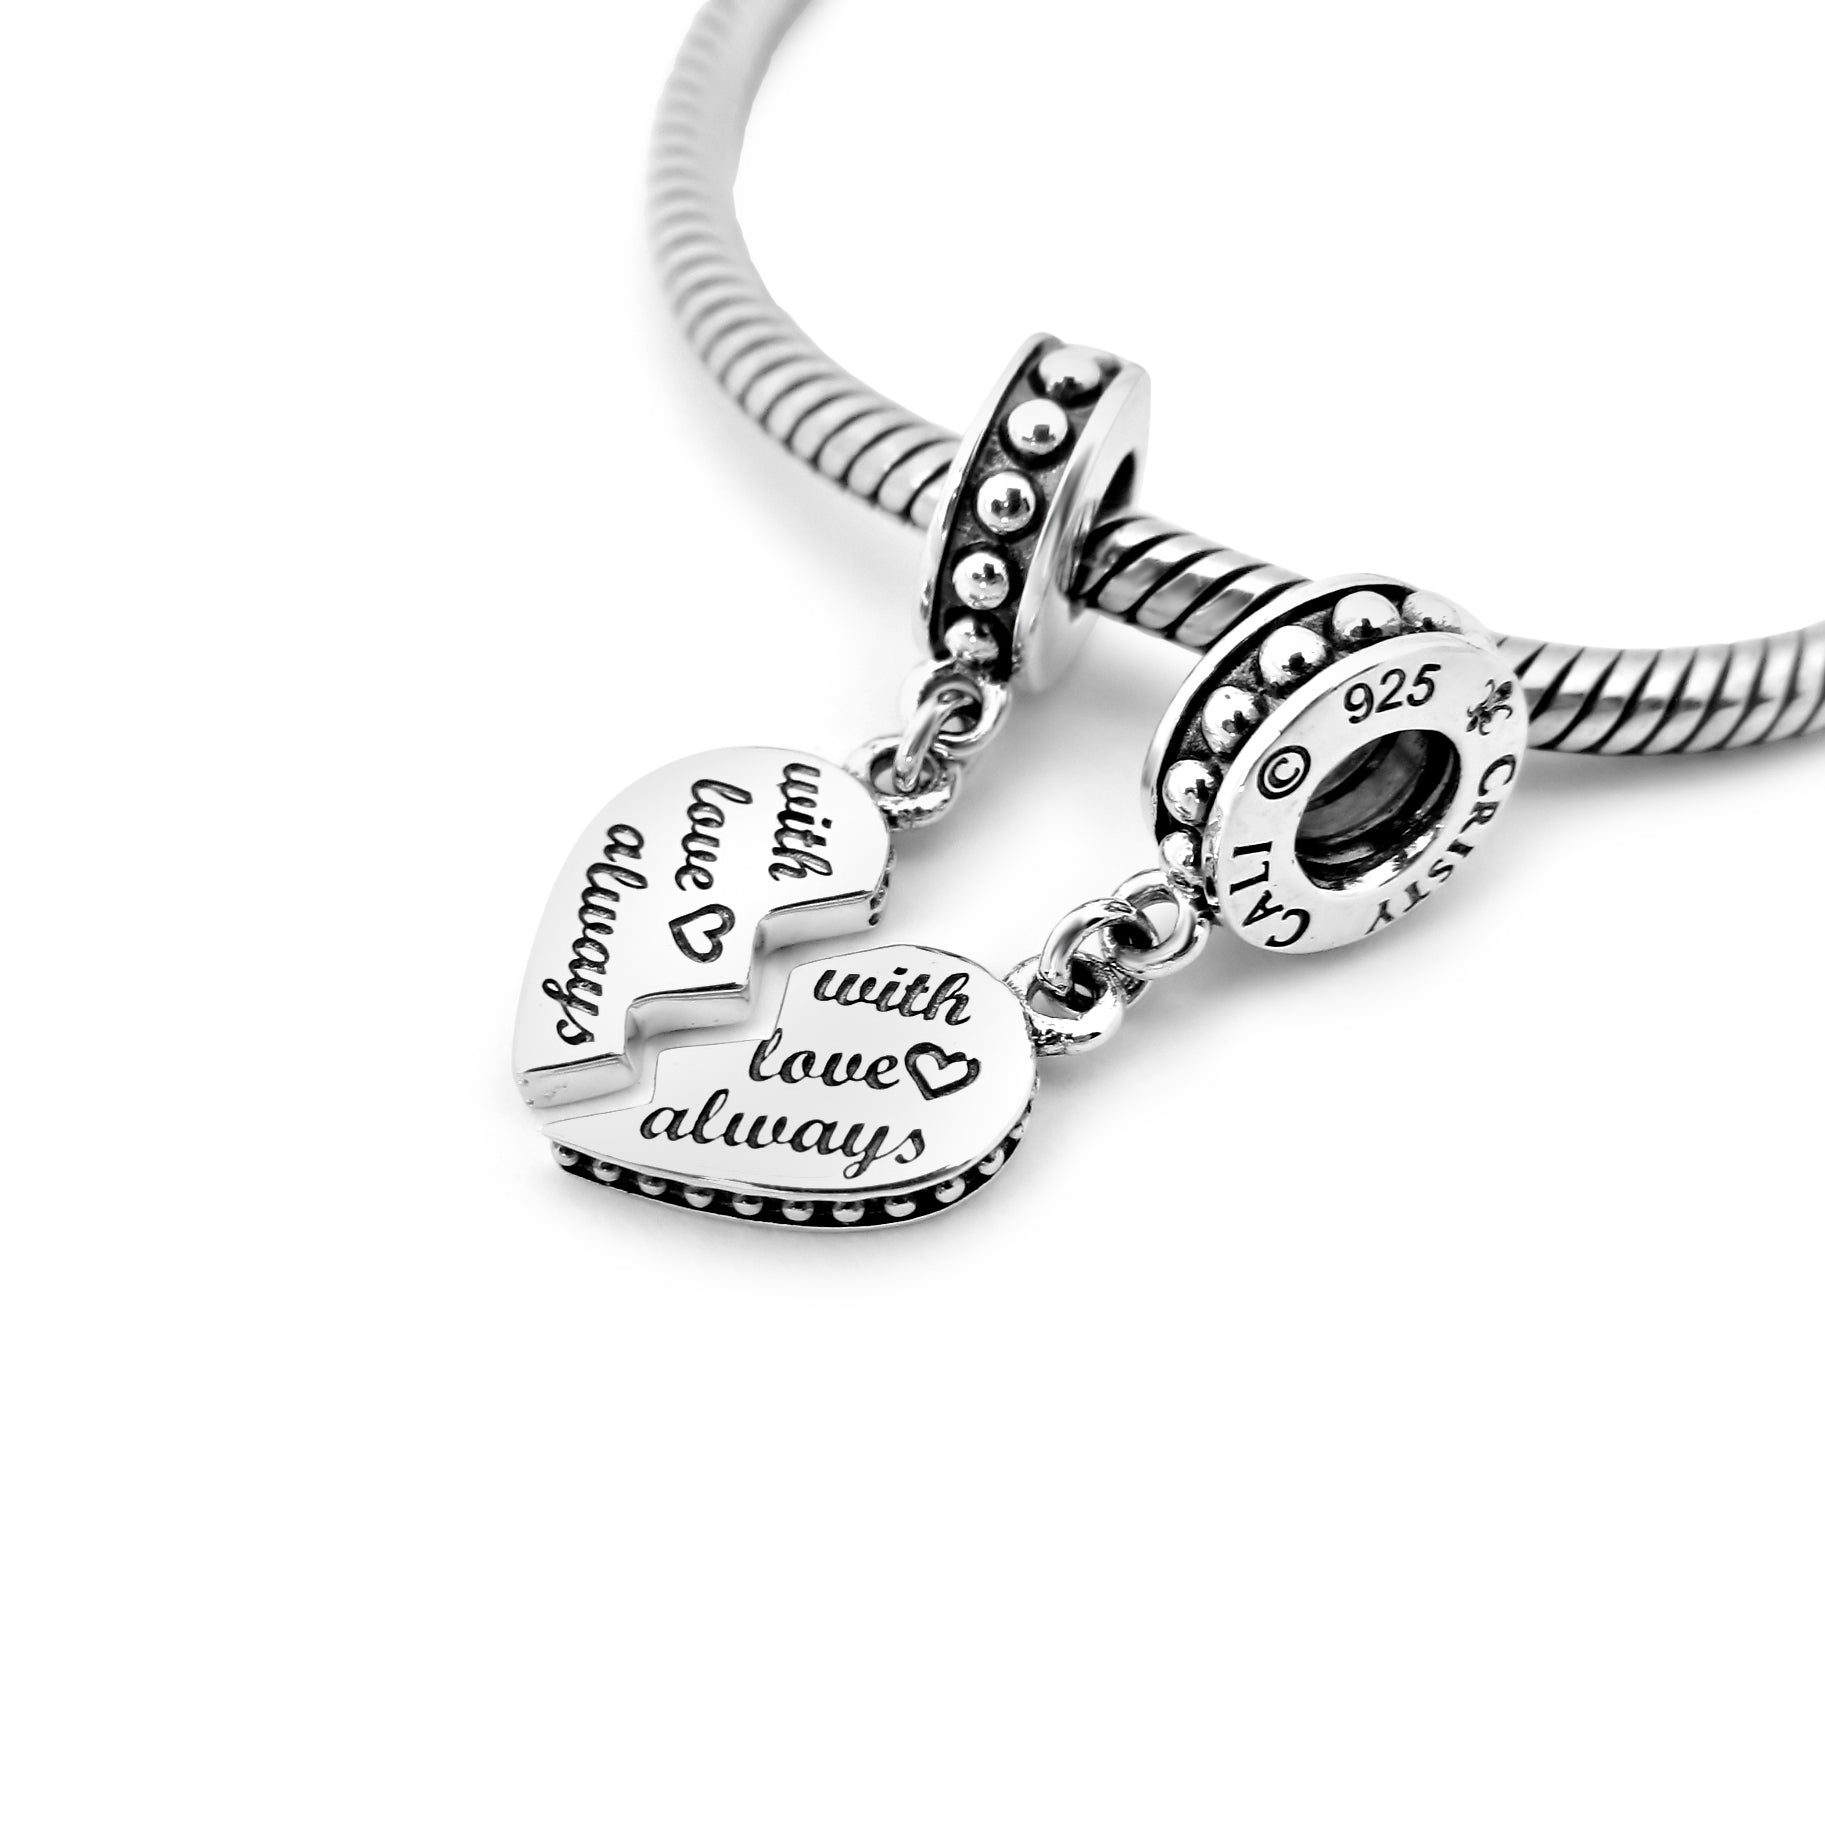 Best Friends Couture Charm Set